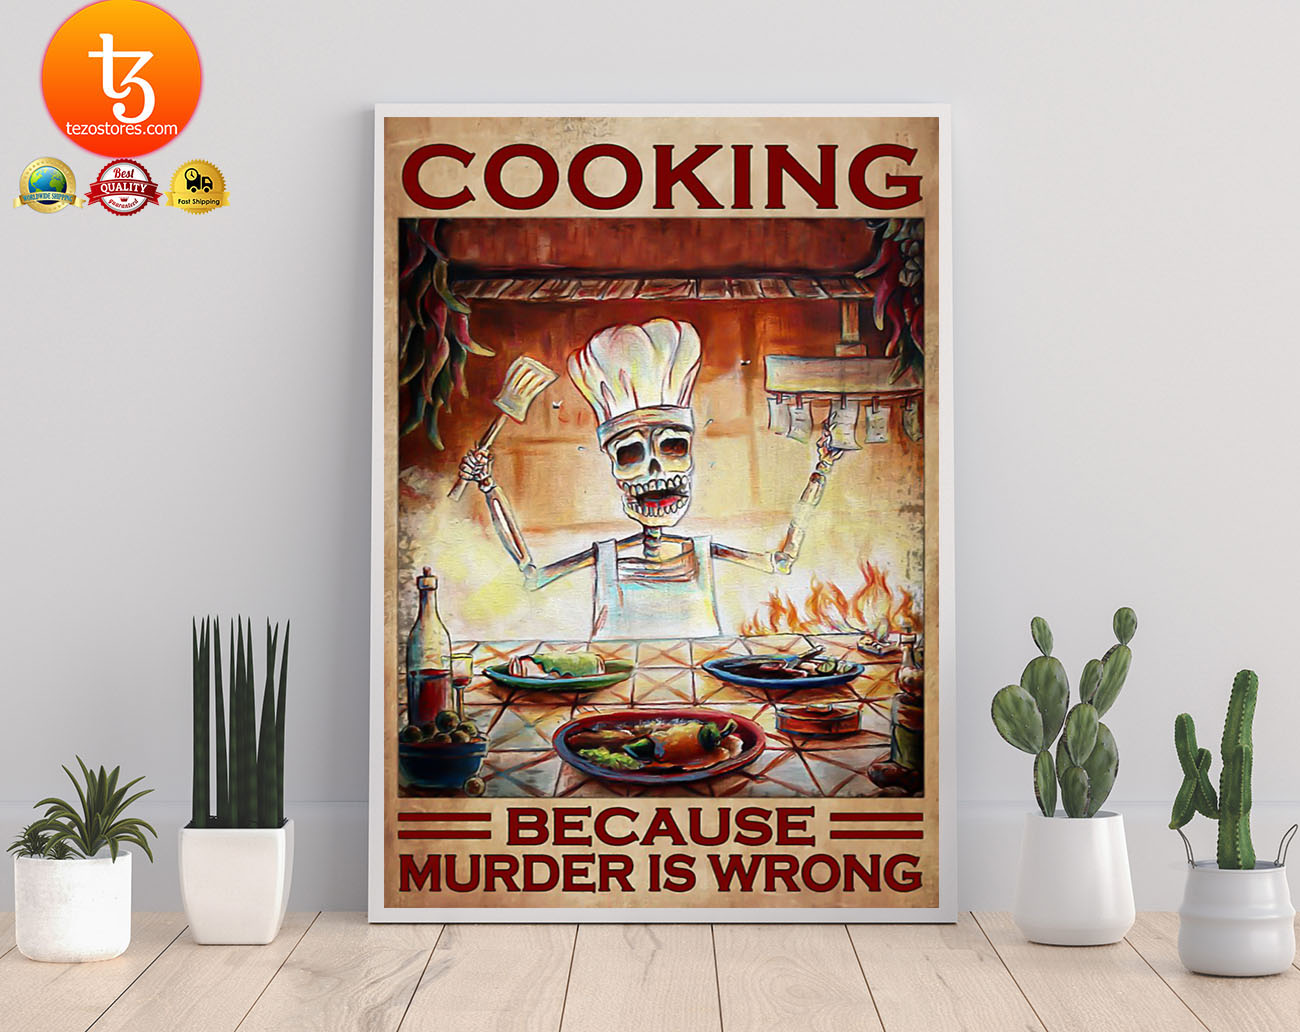 Cooking because murder is wrong poster 21